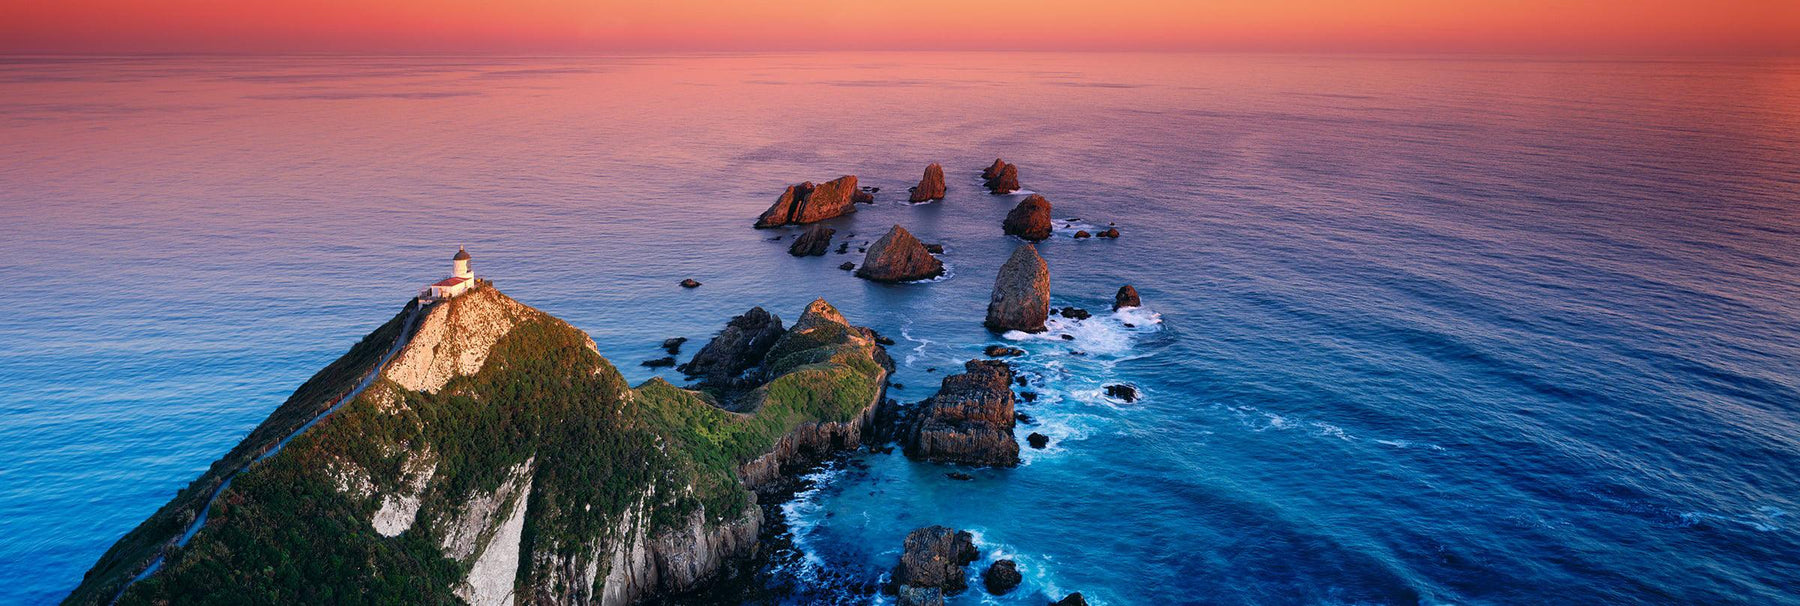 View looking down on Nugget Point Lighthouse that sits on a cliff overlooking the Catlins coast in New Zealand